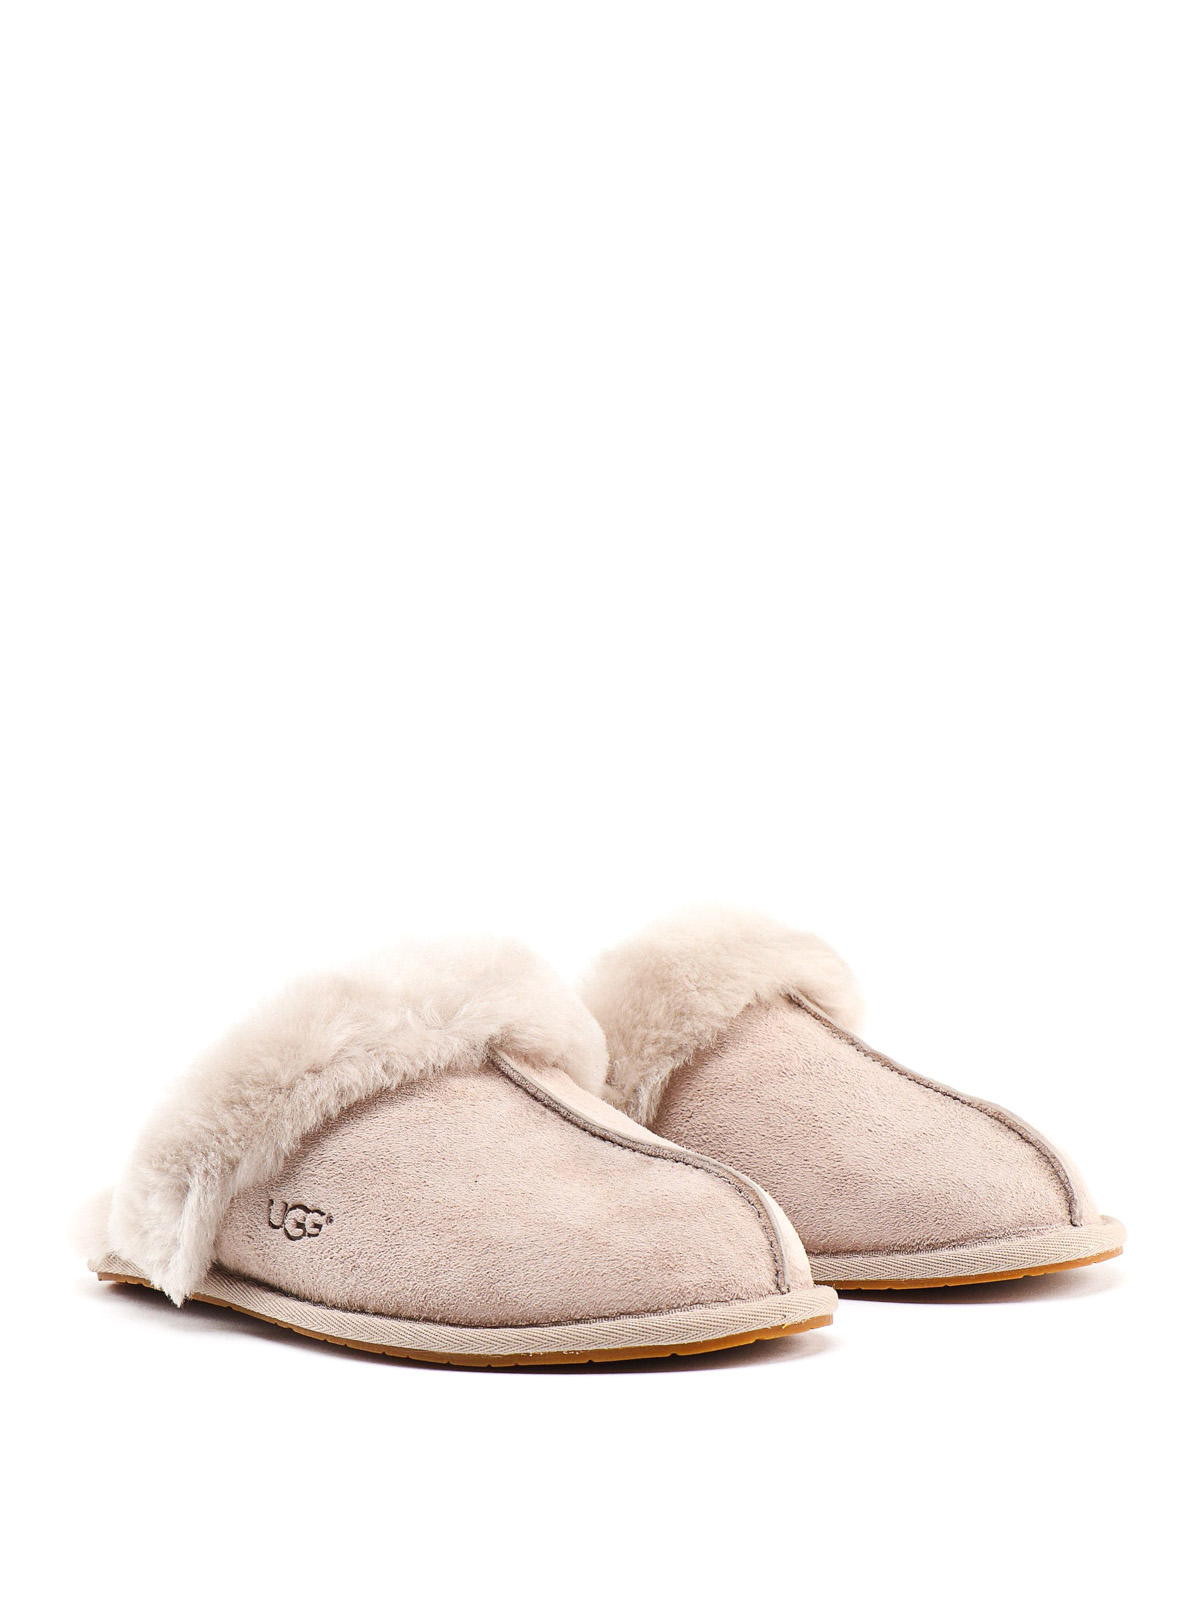 outlet store 5ce29 511eb Ugg - Ciabatte Scuffette II - sabot - 5661OYSTER | iKRIX ...